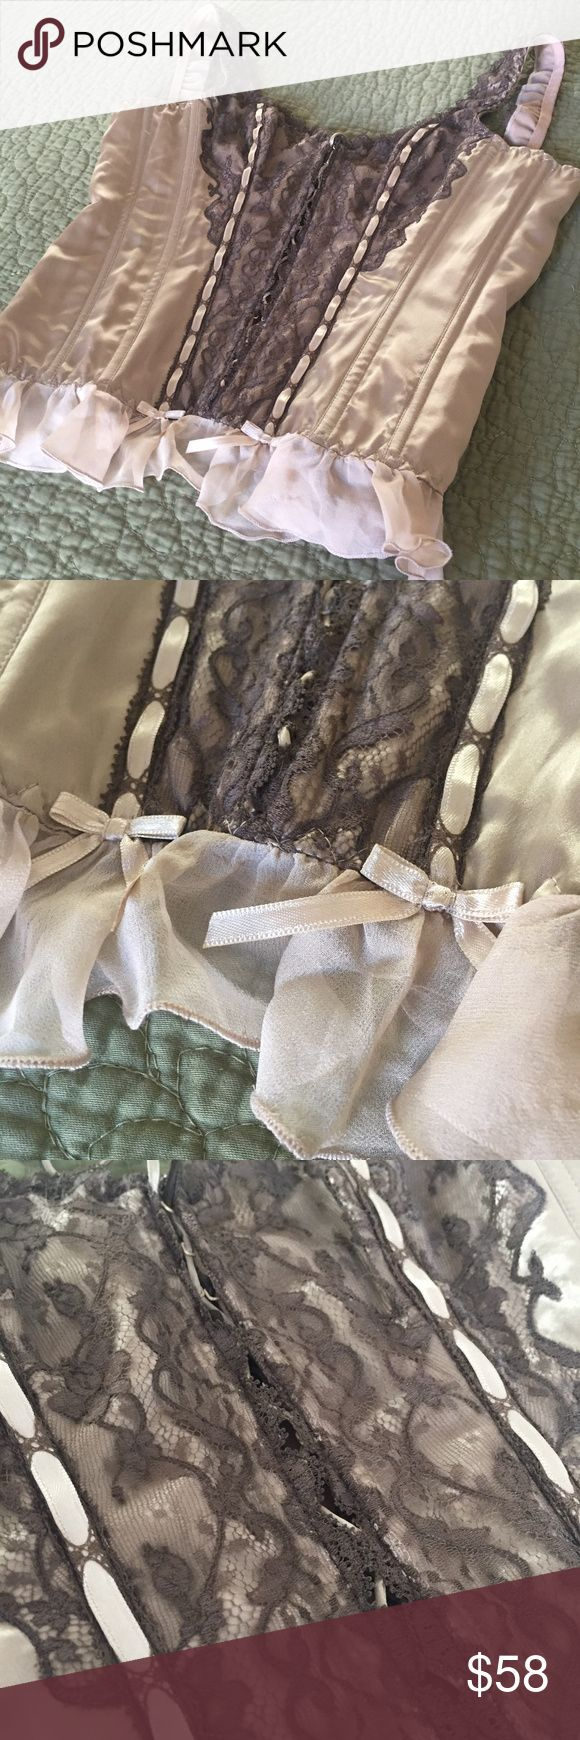 Janet Reger of London CORSET The Details in This Piece are Exquisite... Great Condition Janet Reger Intimates & Sleepwear Shapewear